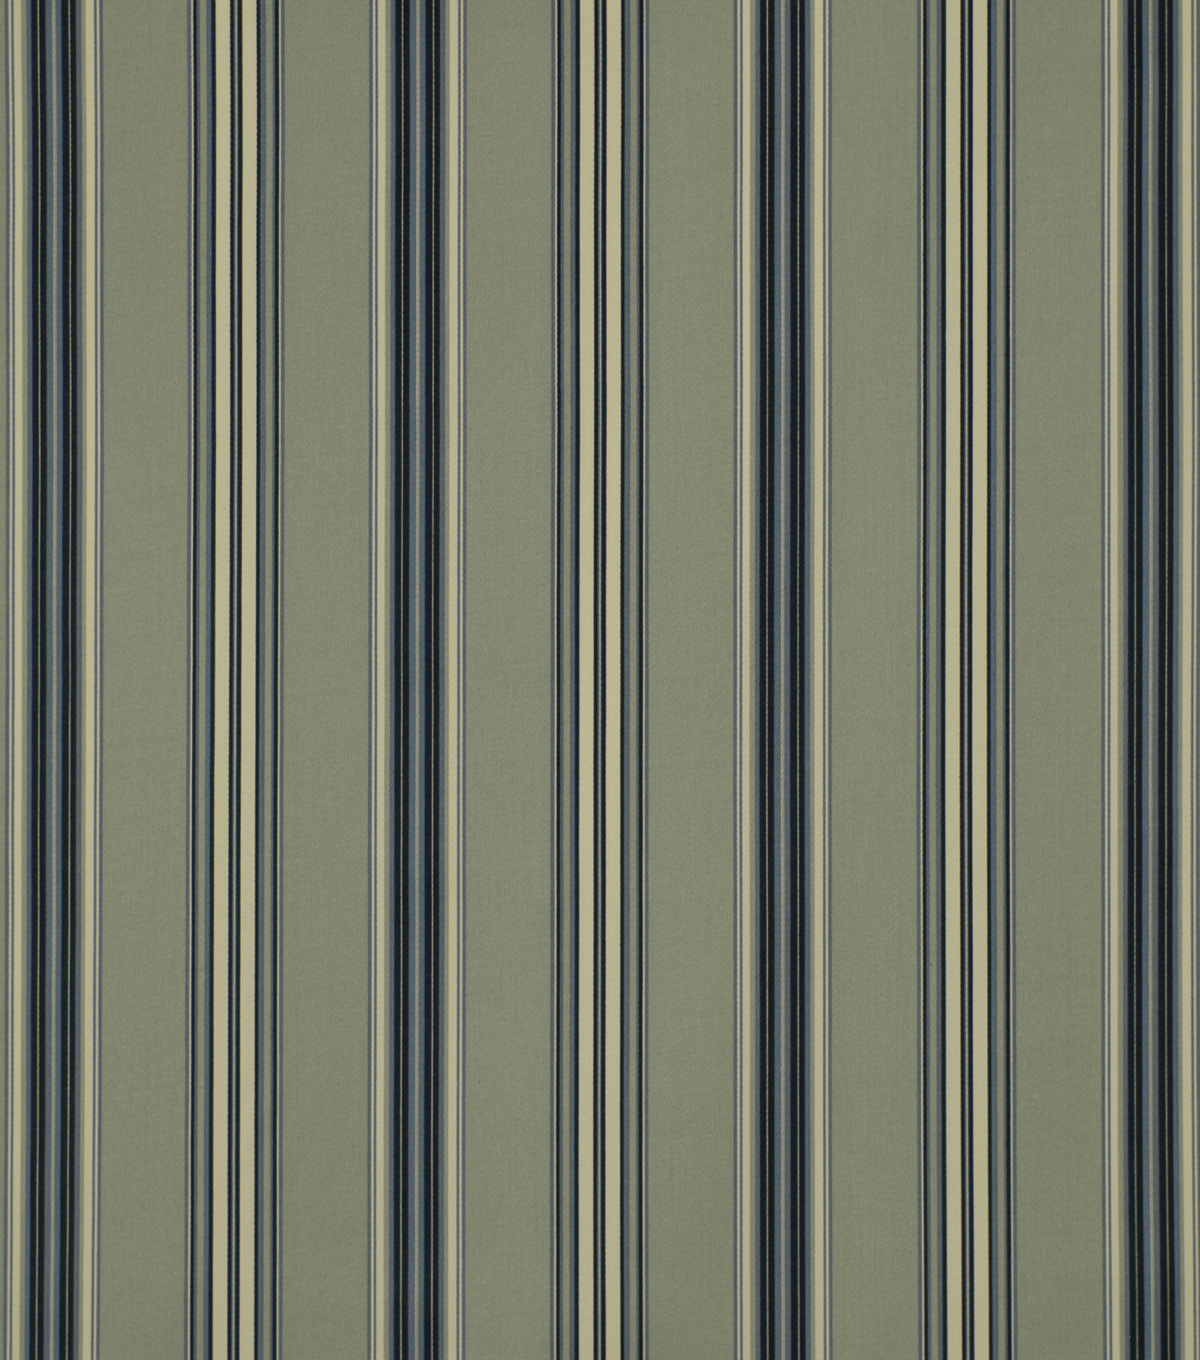 Home Decor 8\u0022x8\u0022 Fabric Swatch-Outdoor Fabric Shore Stripe Indigo